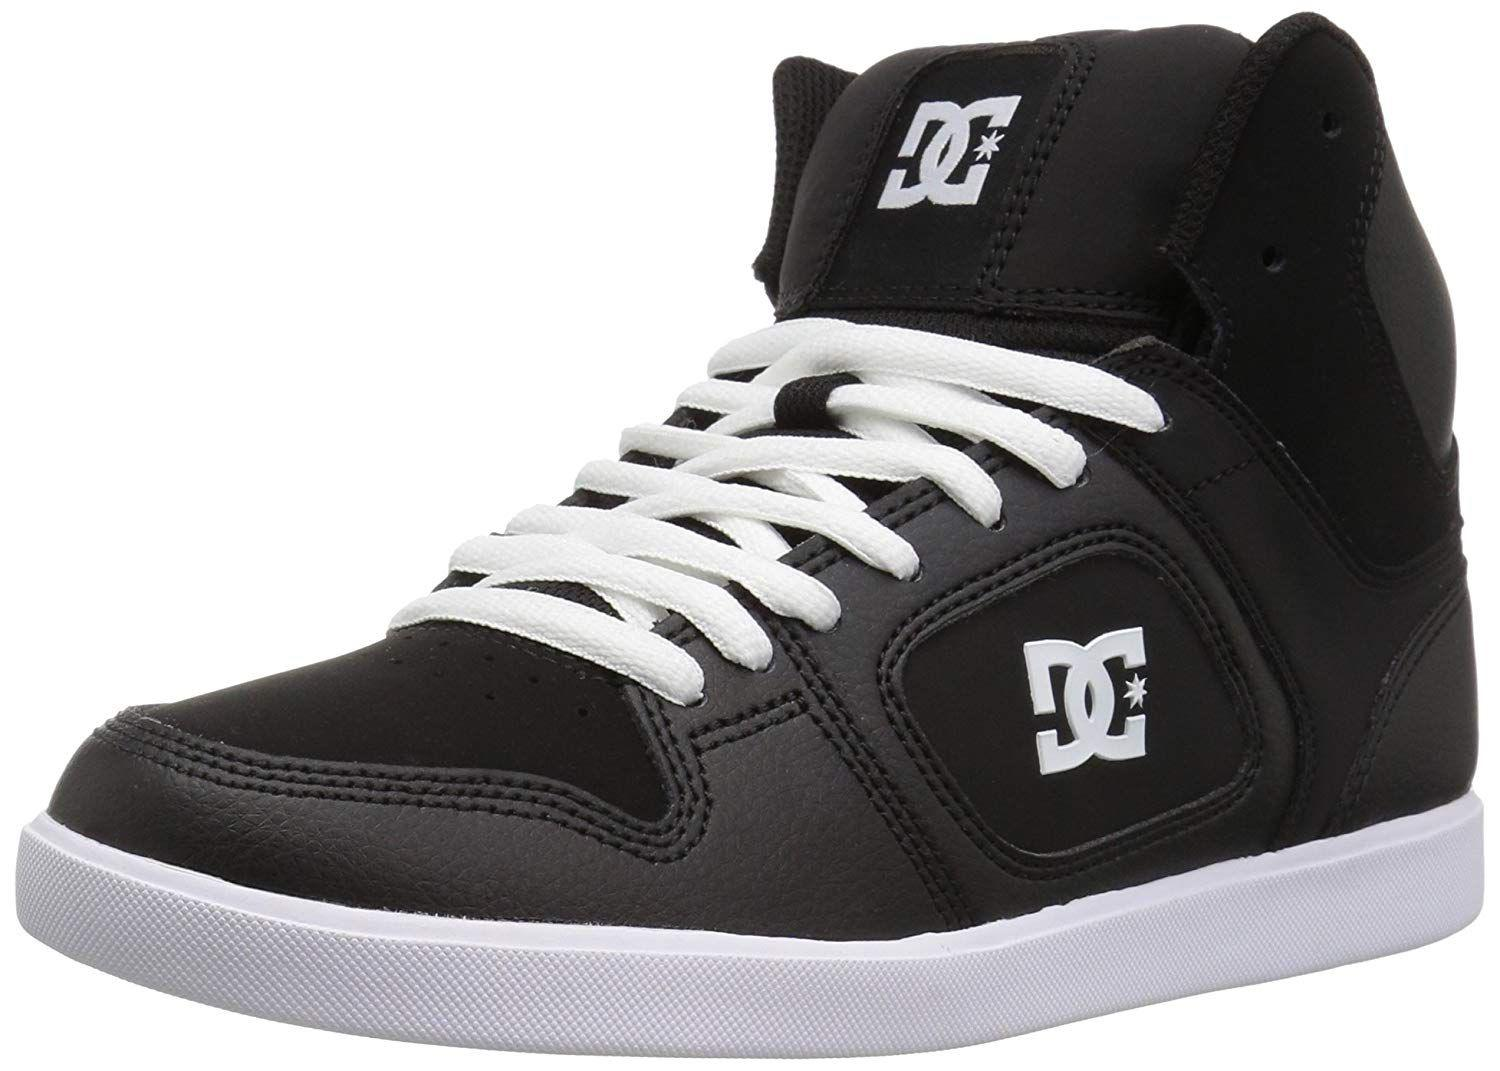 11404c3a5794 Lyst - Dc Shoes Dc Men s Union High in Black for Men